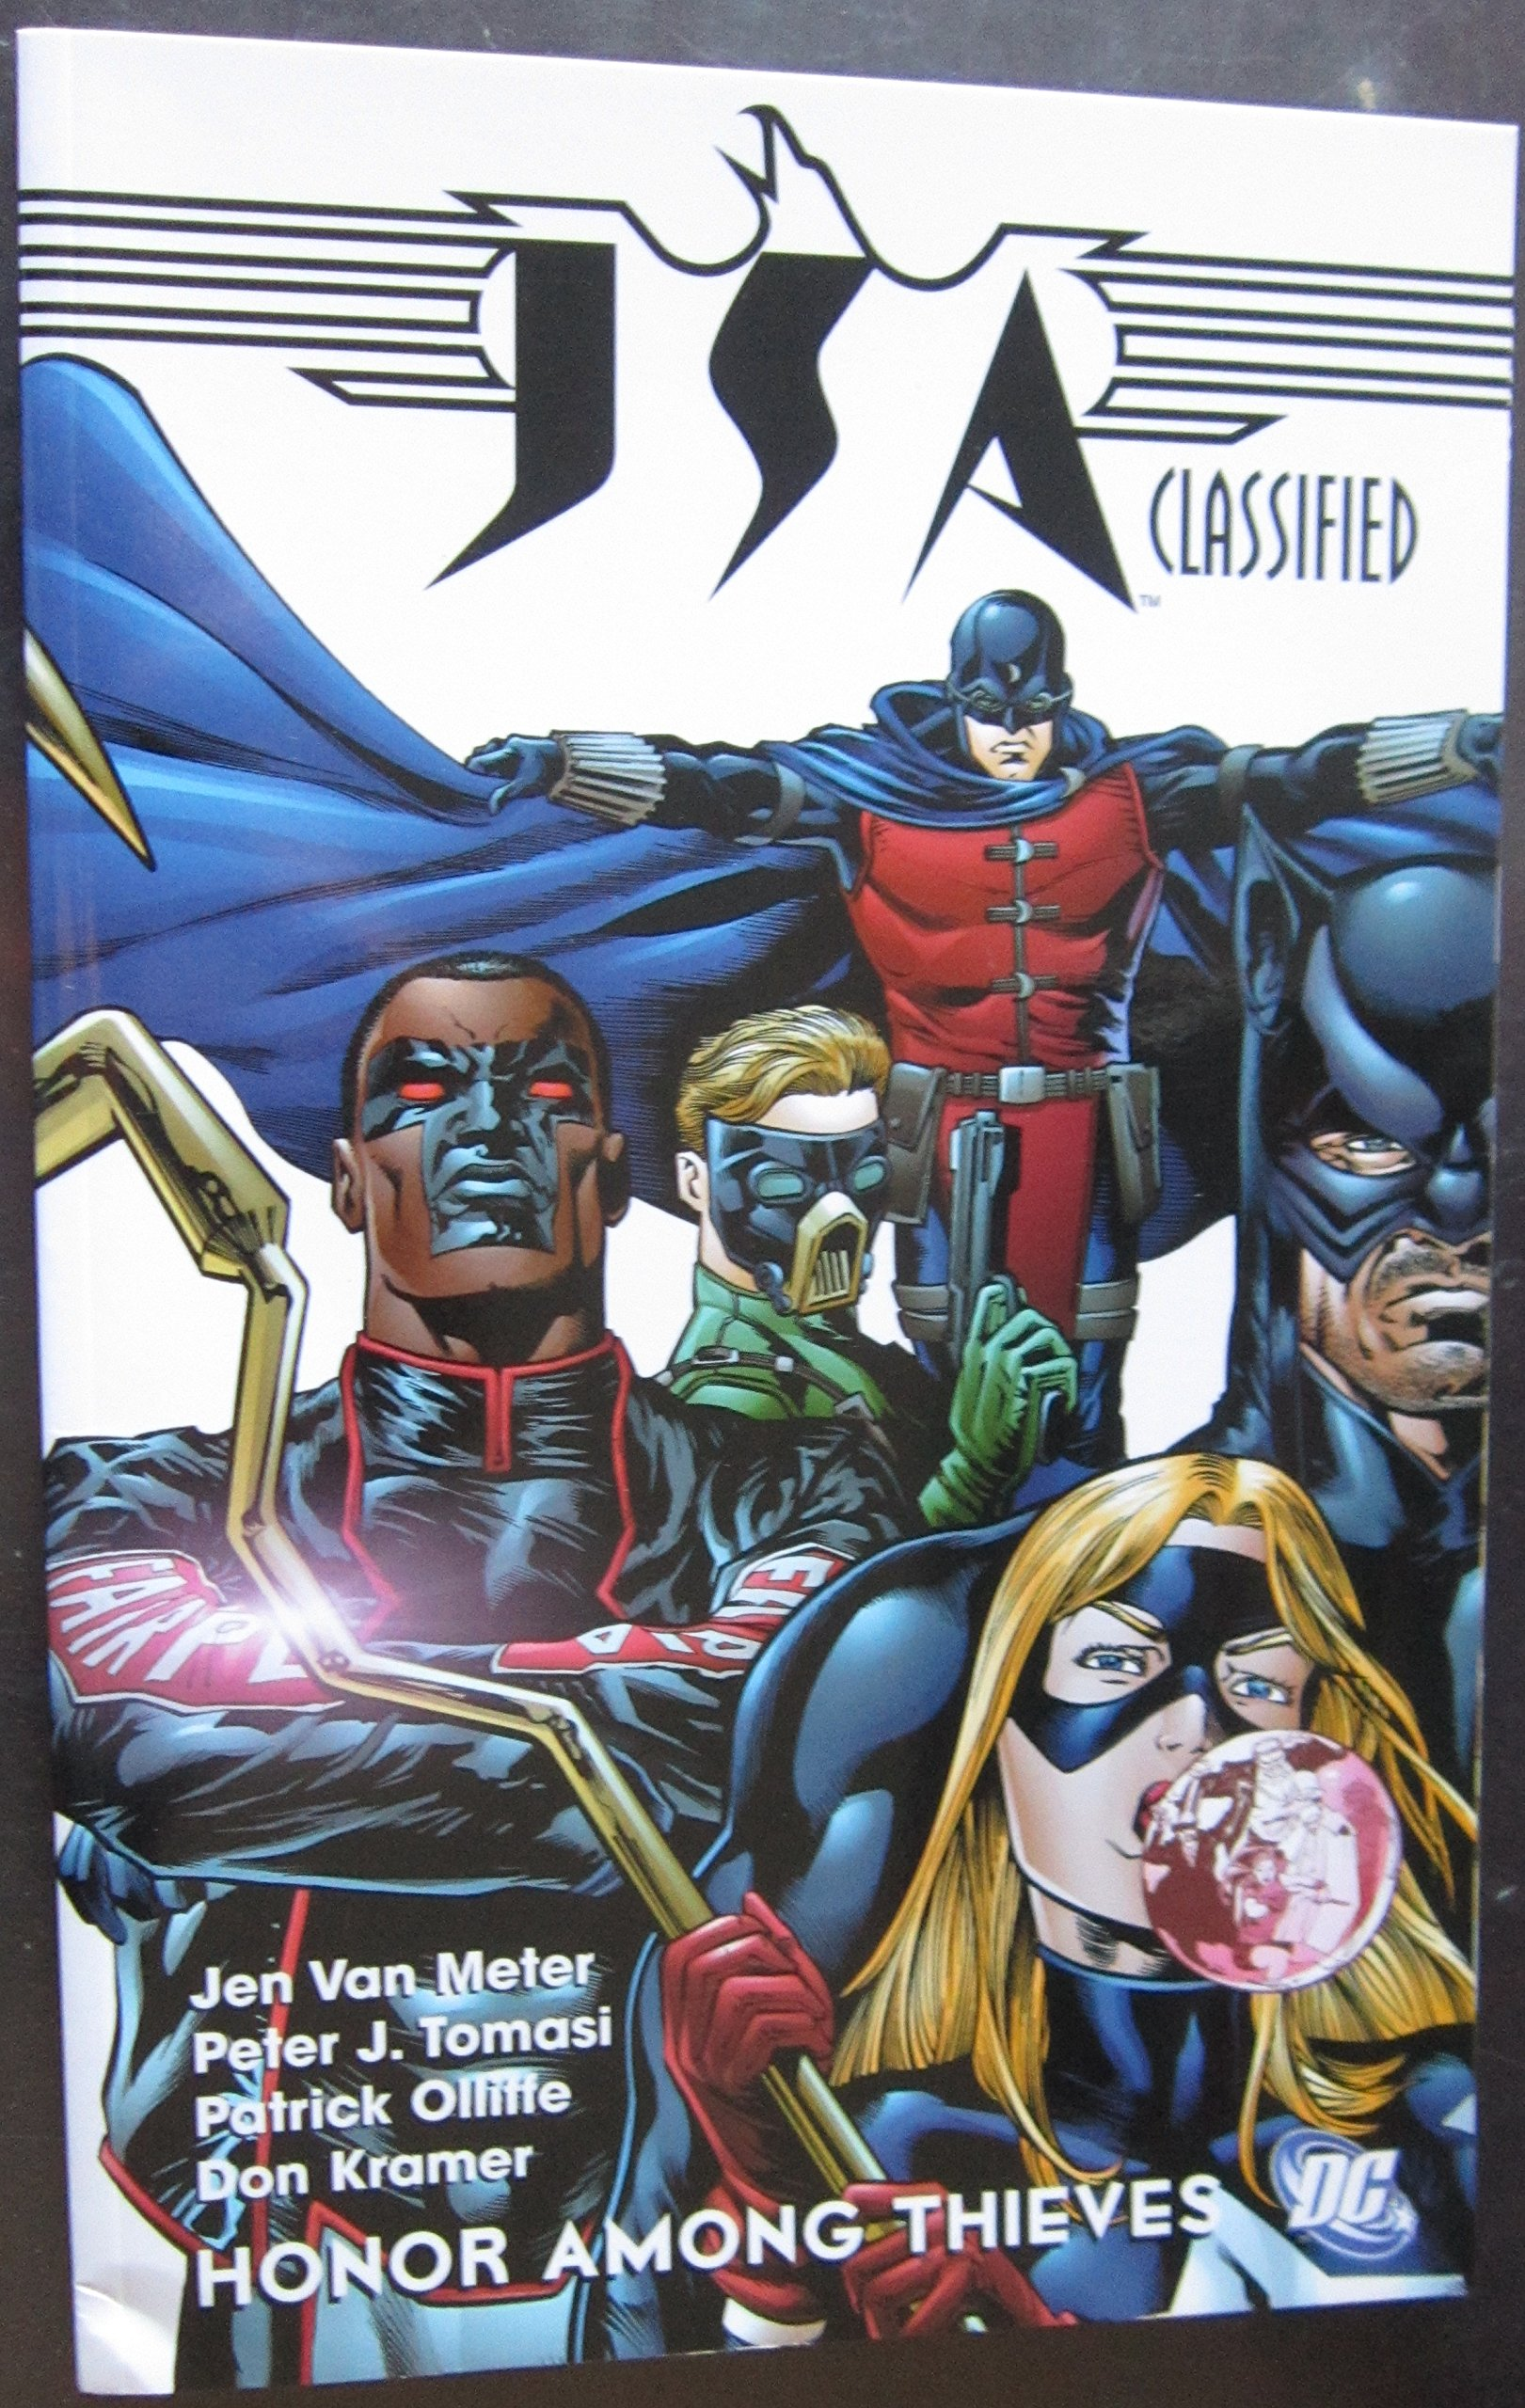 Download Jsa Classified: Honor Among Thieves (Jsa (Justice Society of America)) pdf